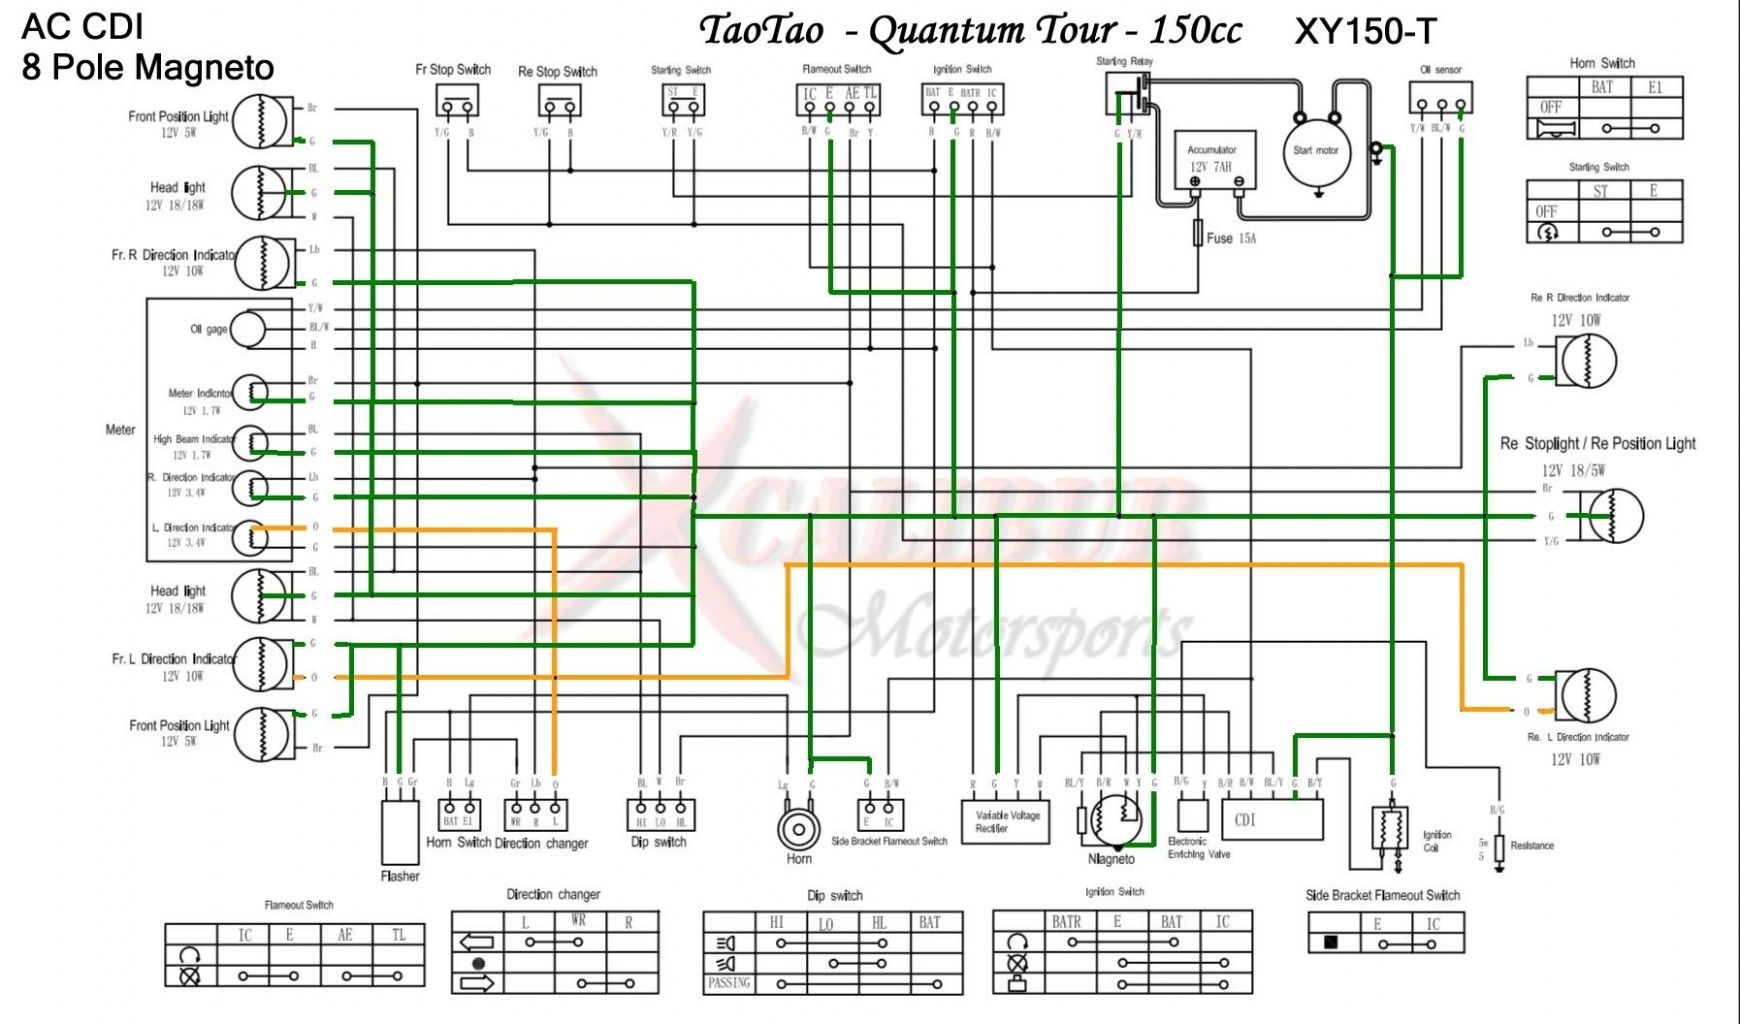 Gy7 7cc Engine Diagram Indonesia | Chinese scooters, Motorcycle wiring,  Scooter | Gy6 50cc Wiring Diagram Electric Scooters For Sale |  | Pinterest